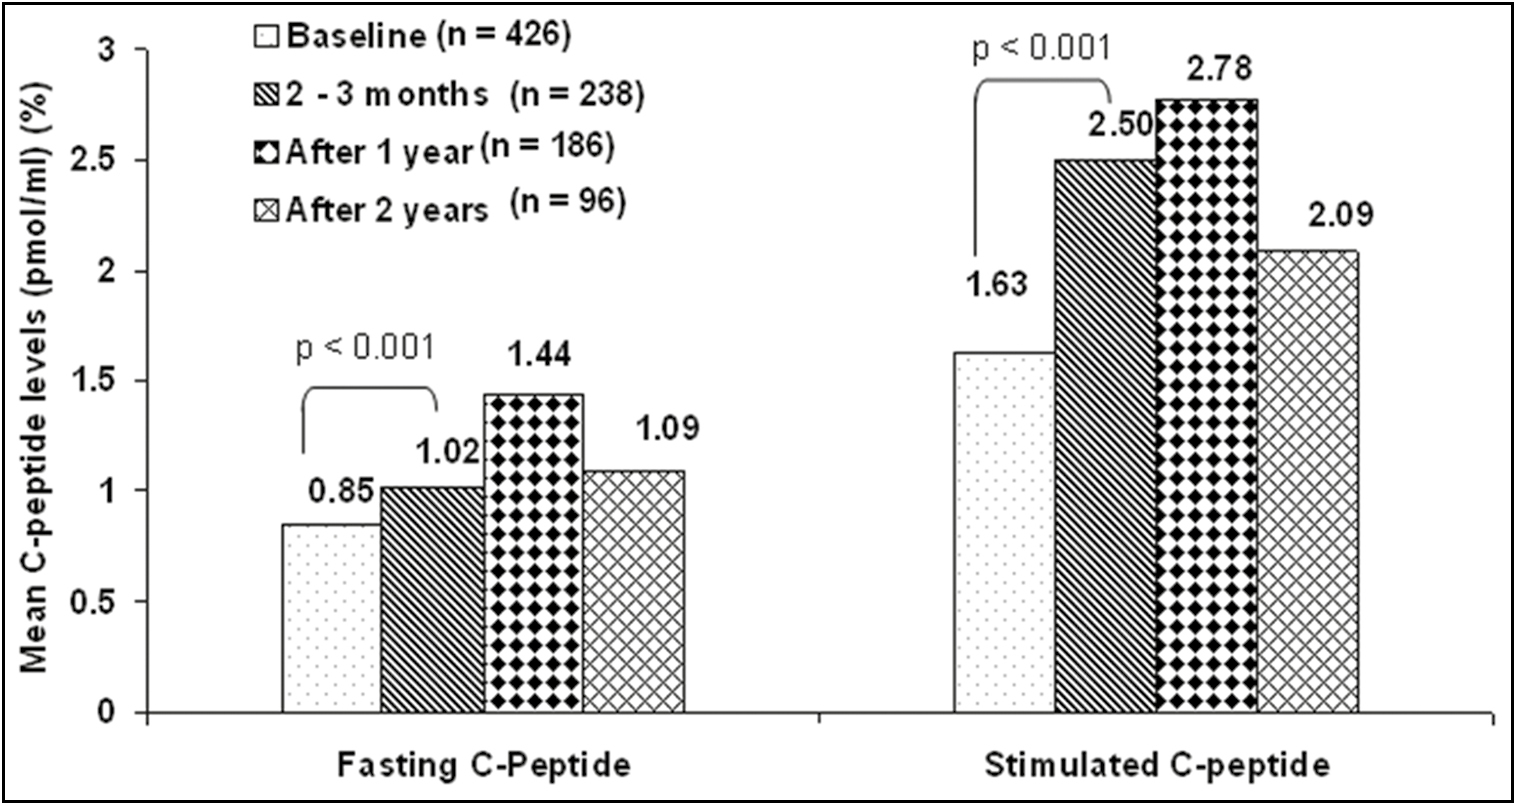 Figure 2: Long-term changes in C-peptide levels after a short course of insulin